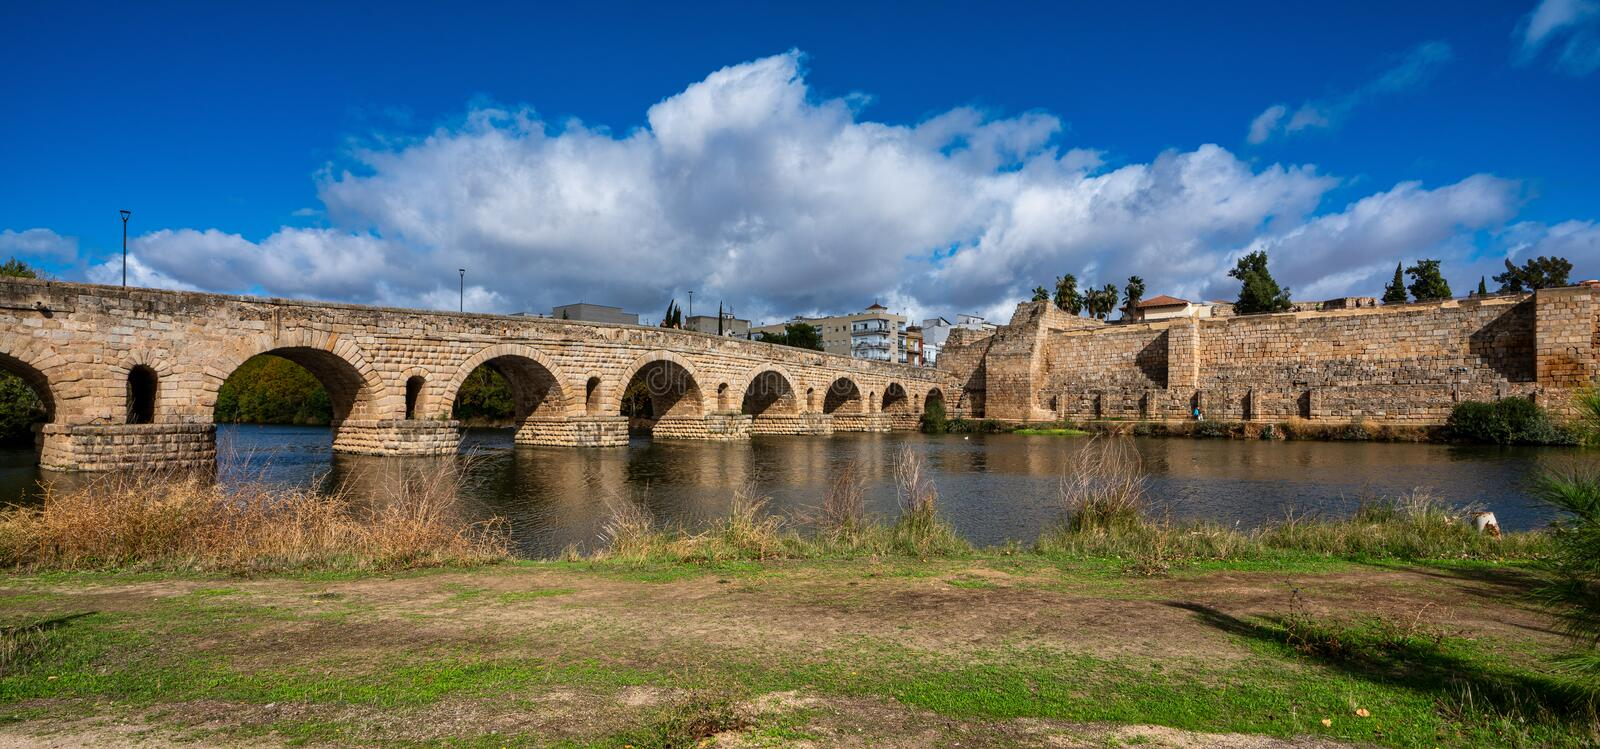 Puente Romano, the Roman Bridge in Merida with the Alcazaba, Extremadura, Spain royalty free stock photo